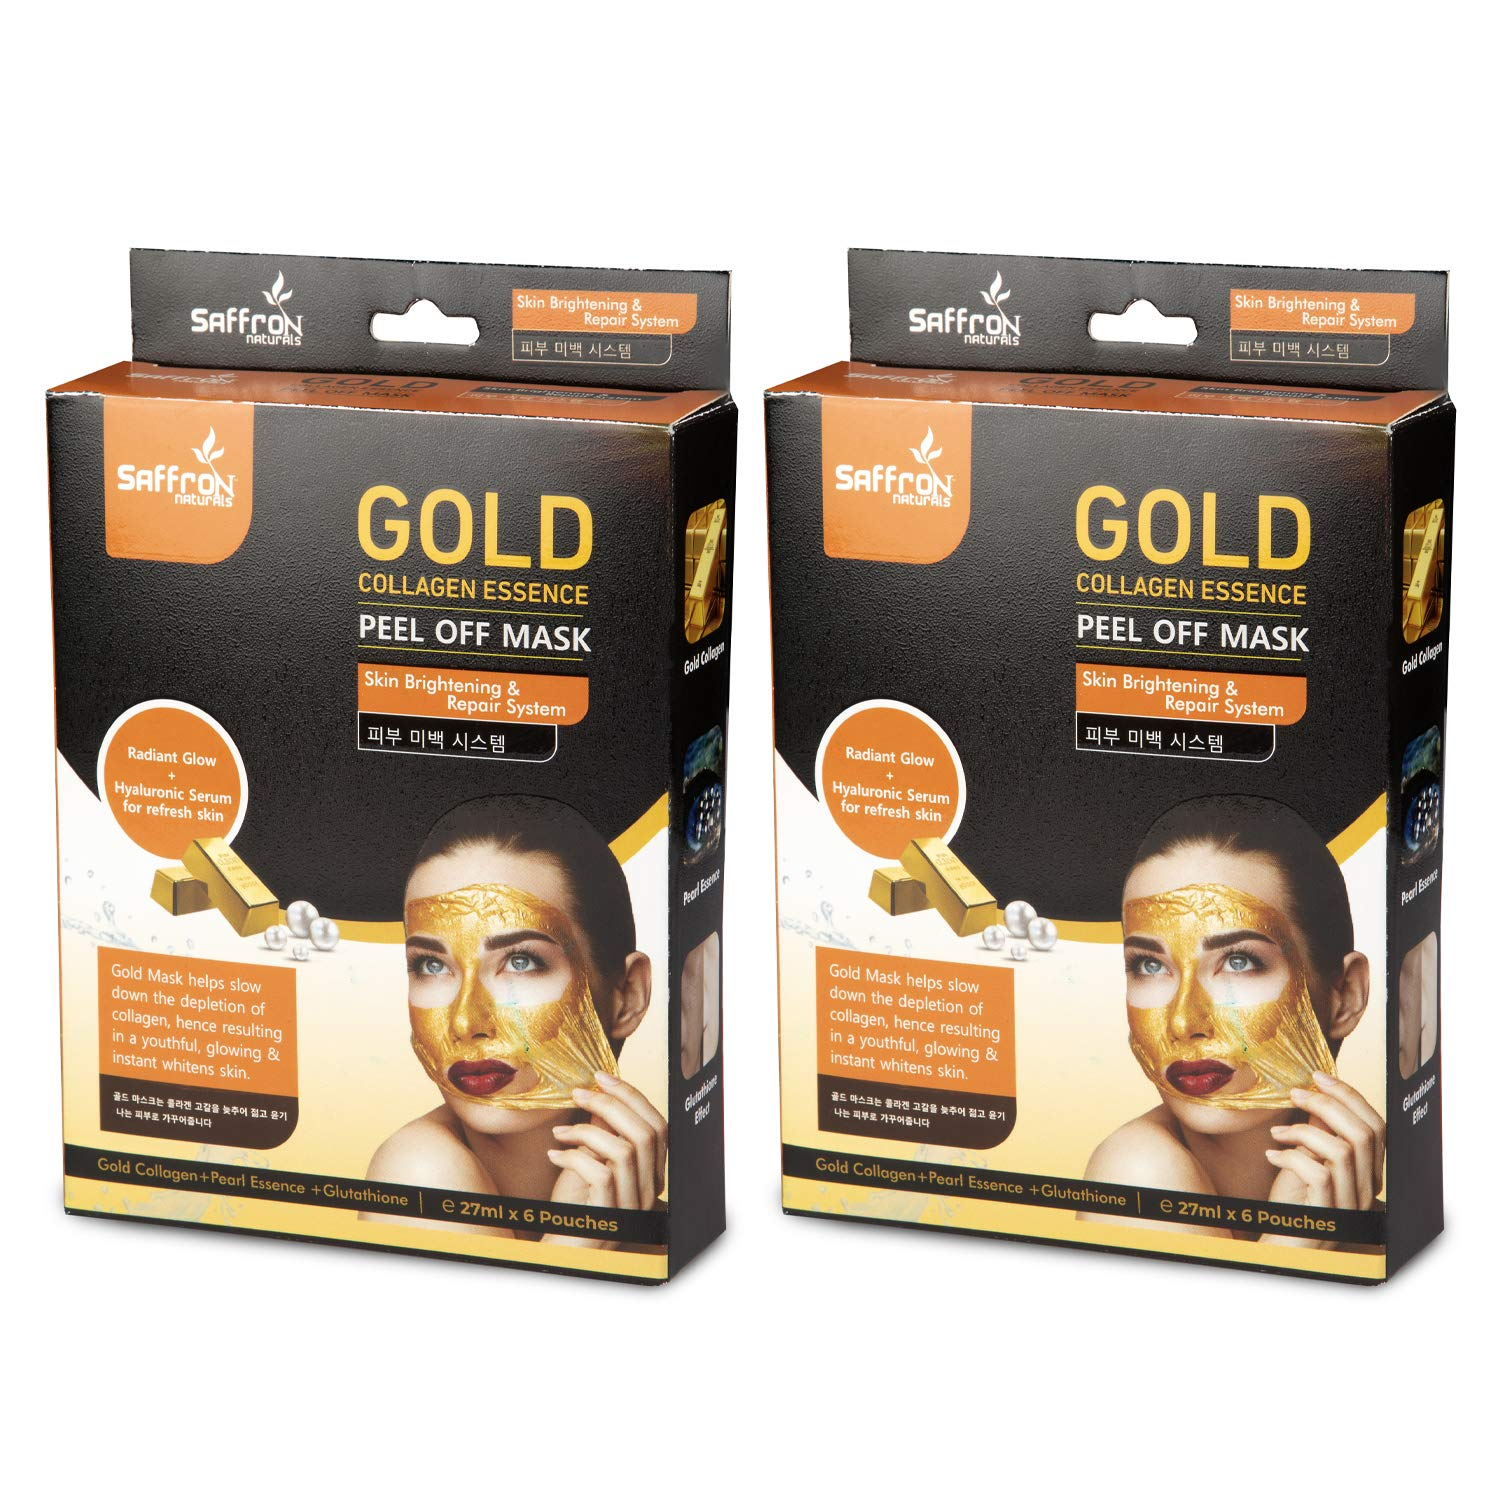 Saffron Naturals Collagen Essence Gold Peel off Mask Lightens Skin Tones Produce Naturally Glowing Skin (27ml x 6 Pouch, Pack of 2)